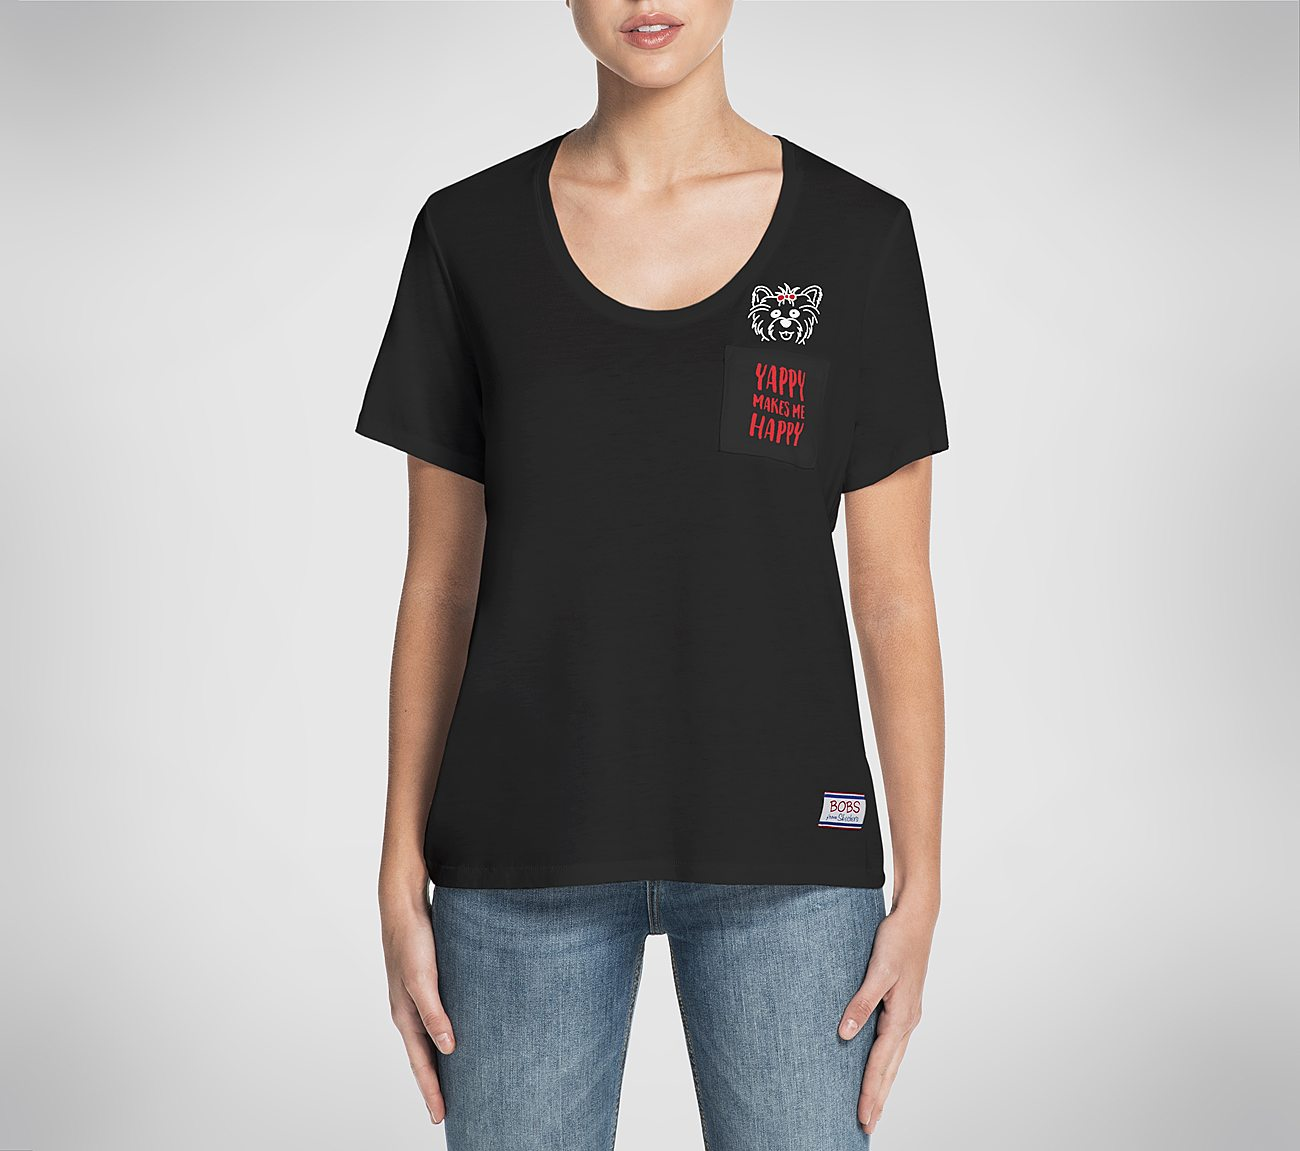 BOBS Yappy Happy Relaxed Pocket Tee Shirt